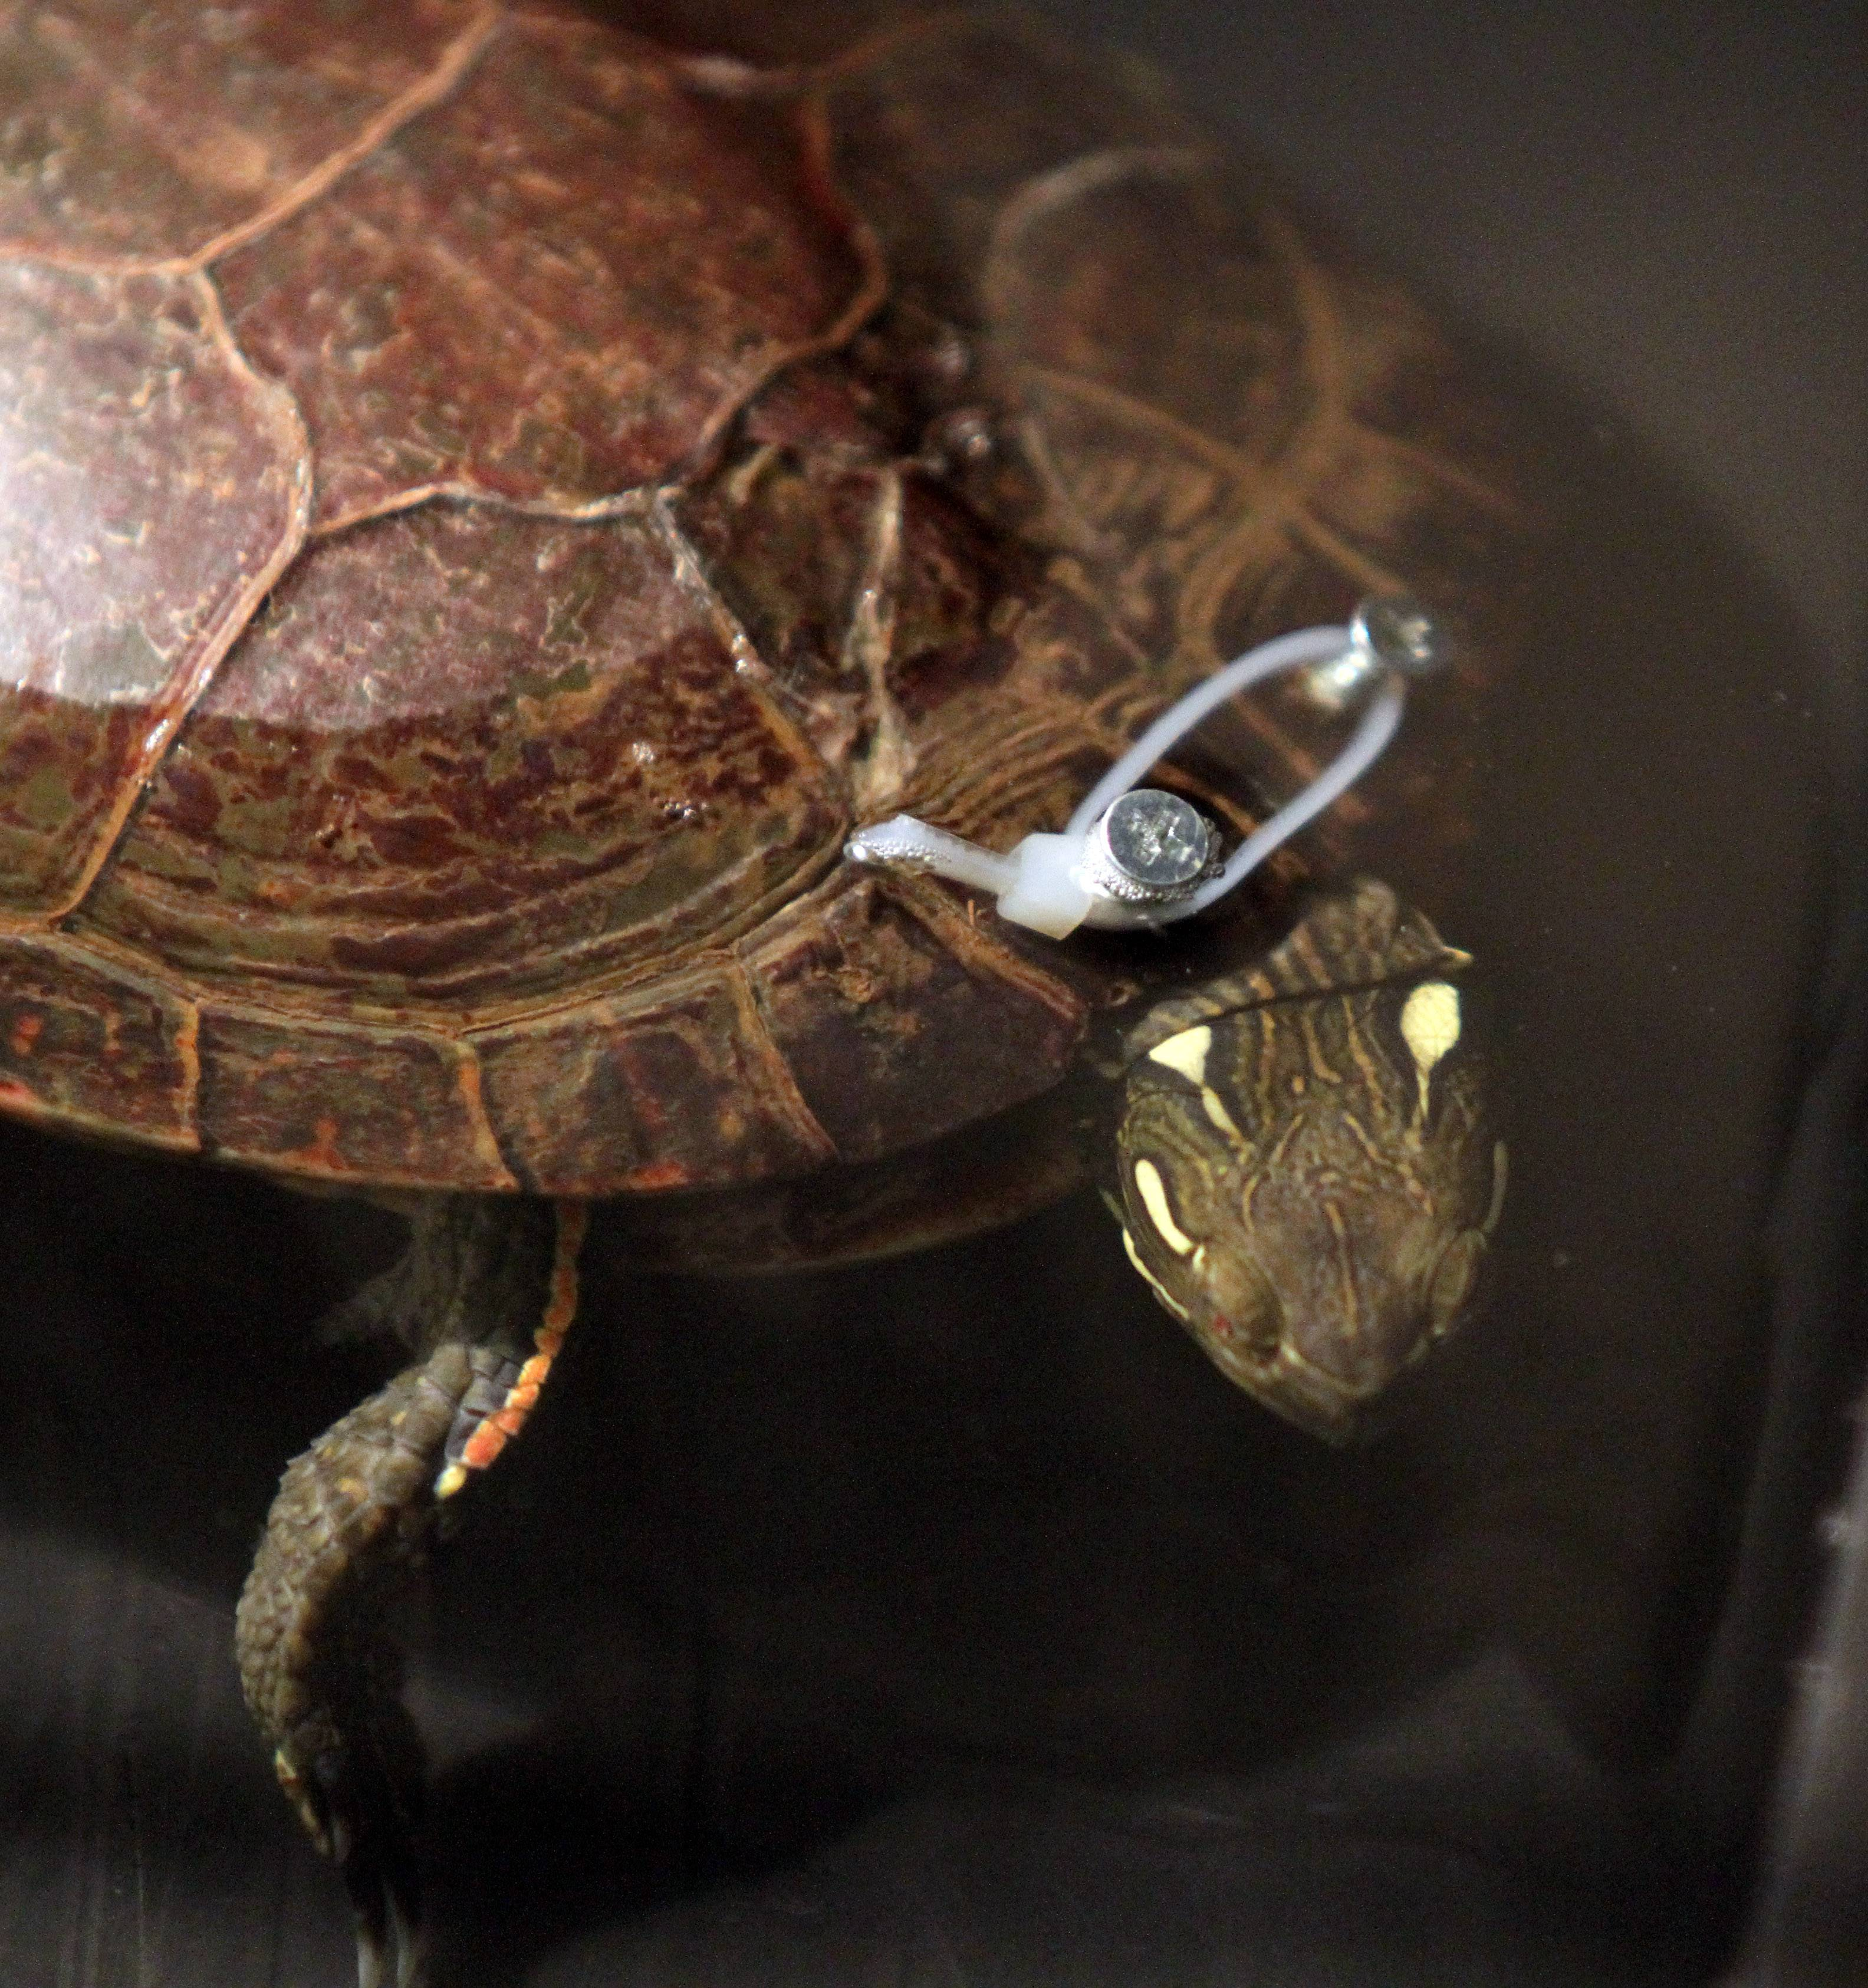 An injured painted turtle recuperates at Willowbrook Wildlife Center in Glen Ellyn. Cable ties and screws are used to help heal its broken shell.